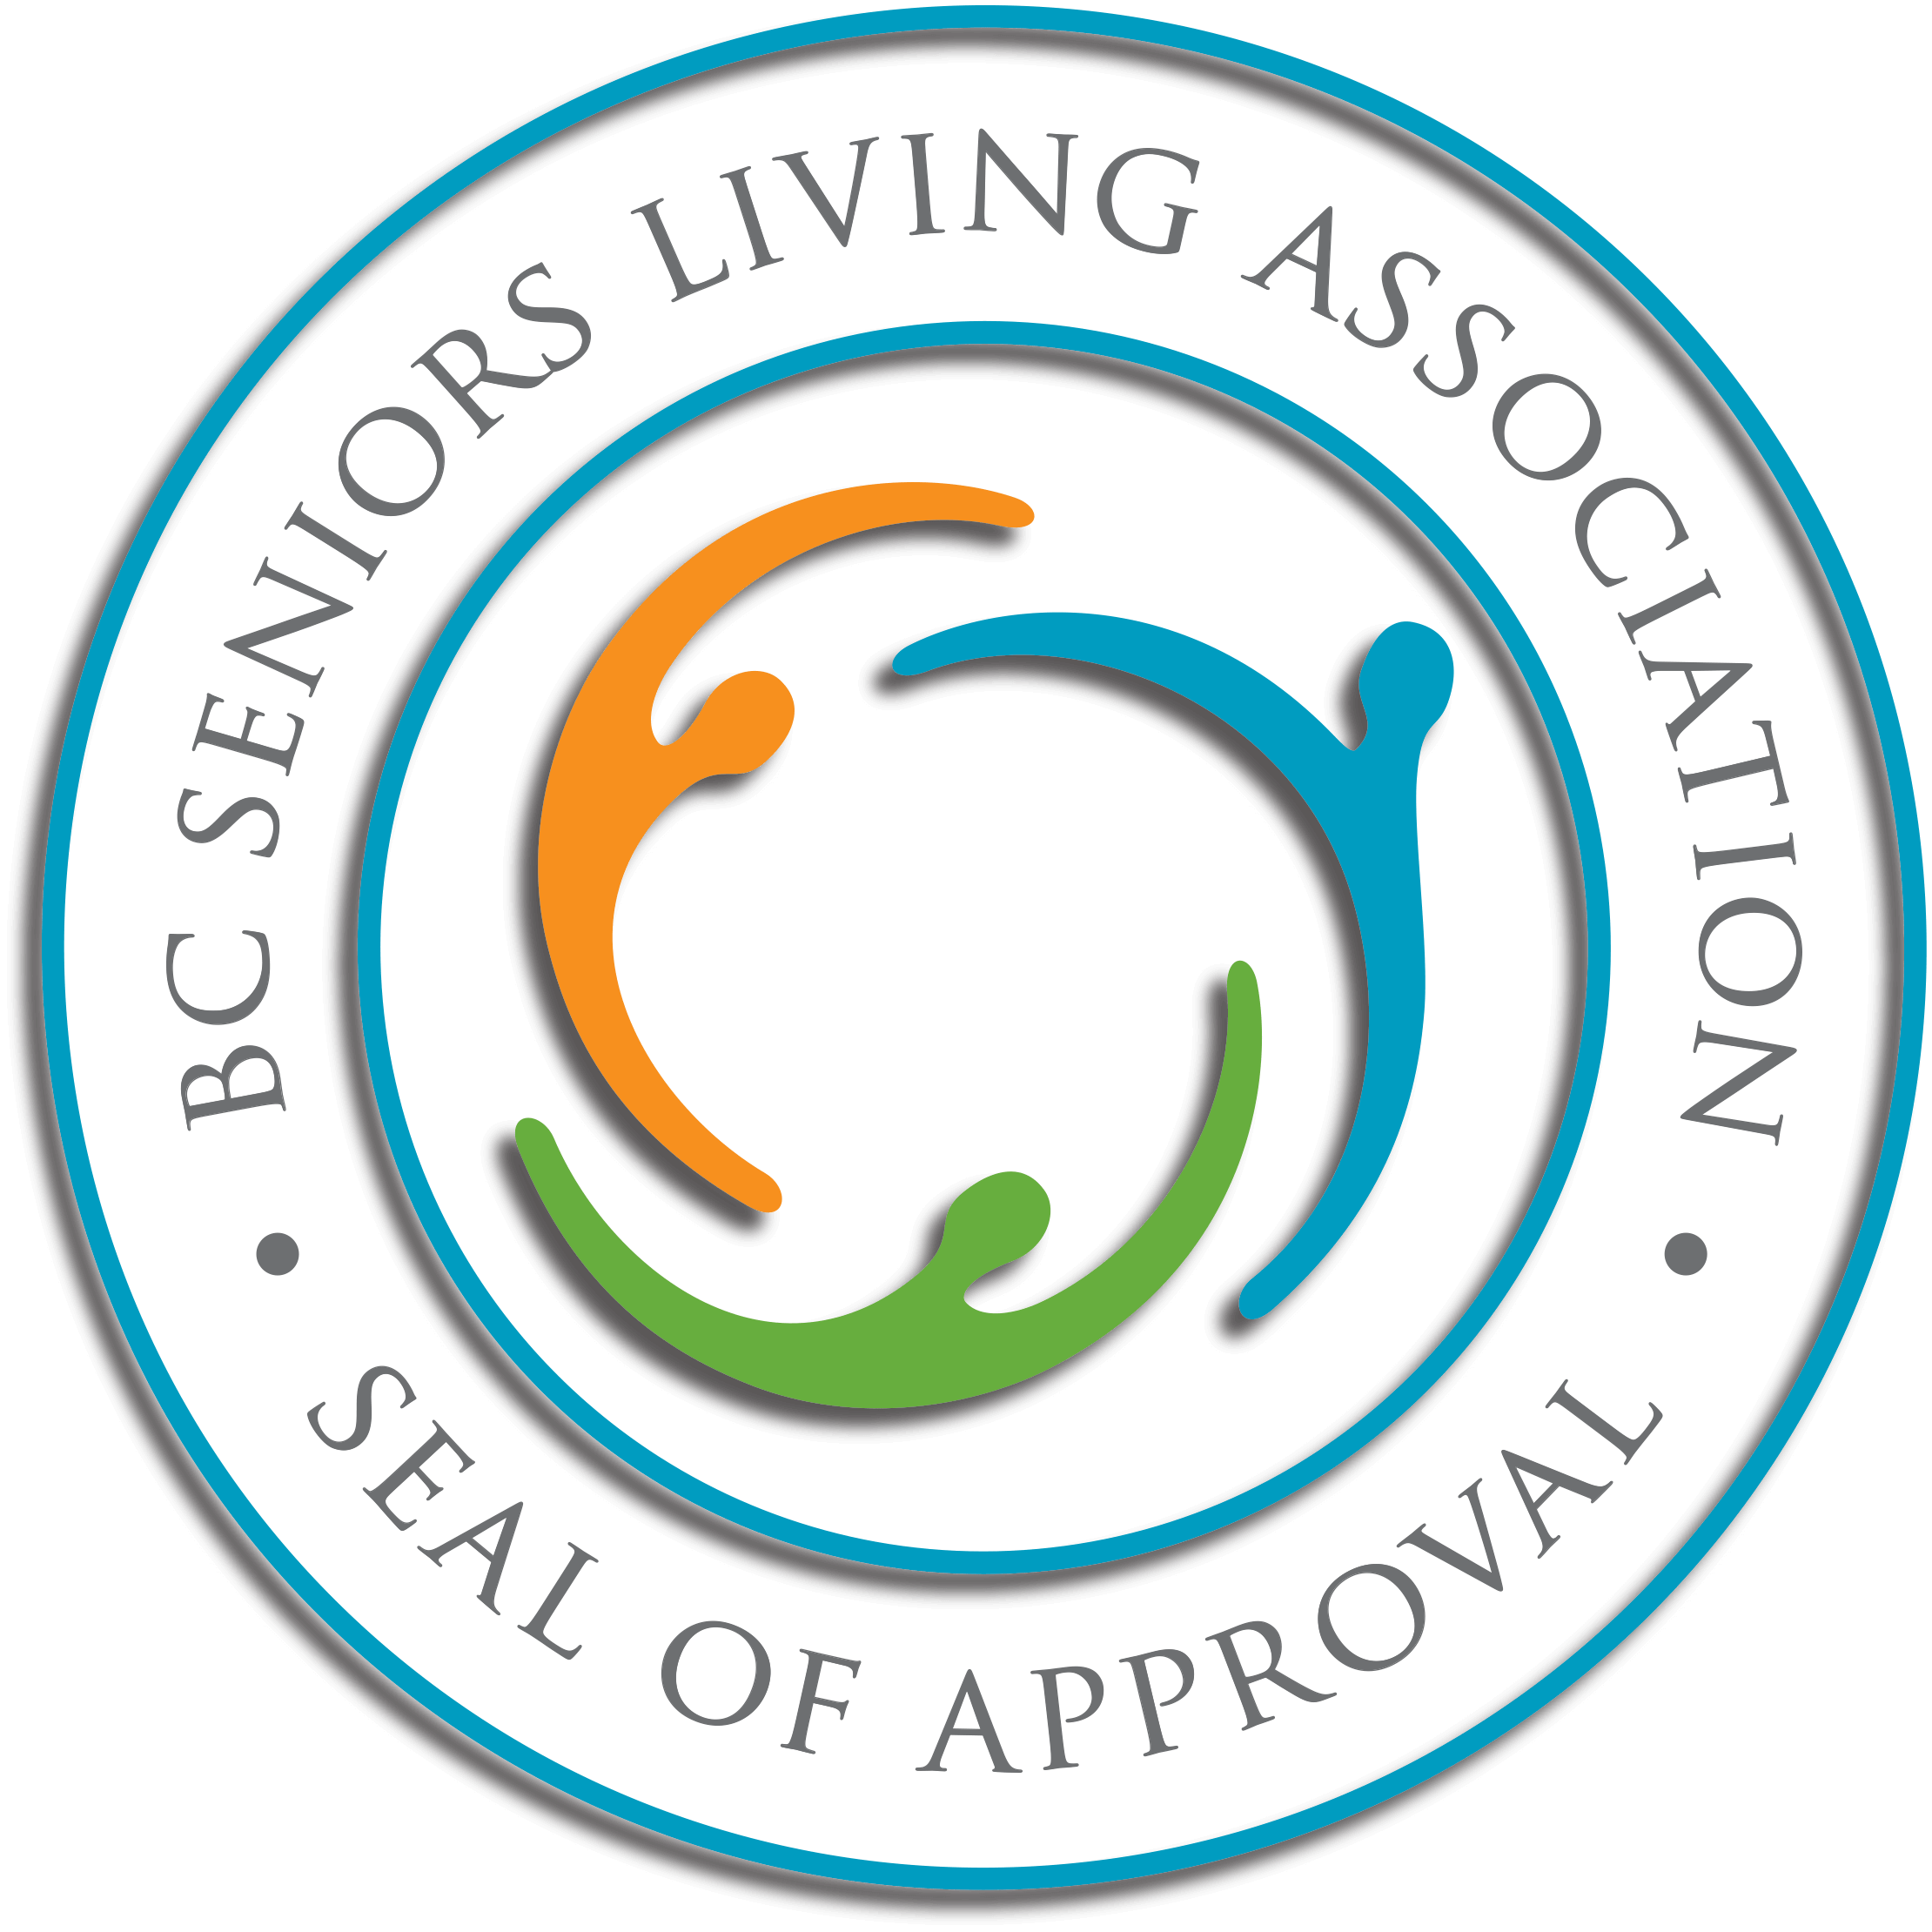 logo of BC Seniors Living Association (BCSLA)